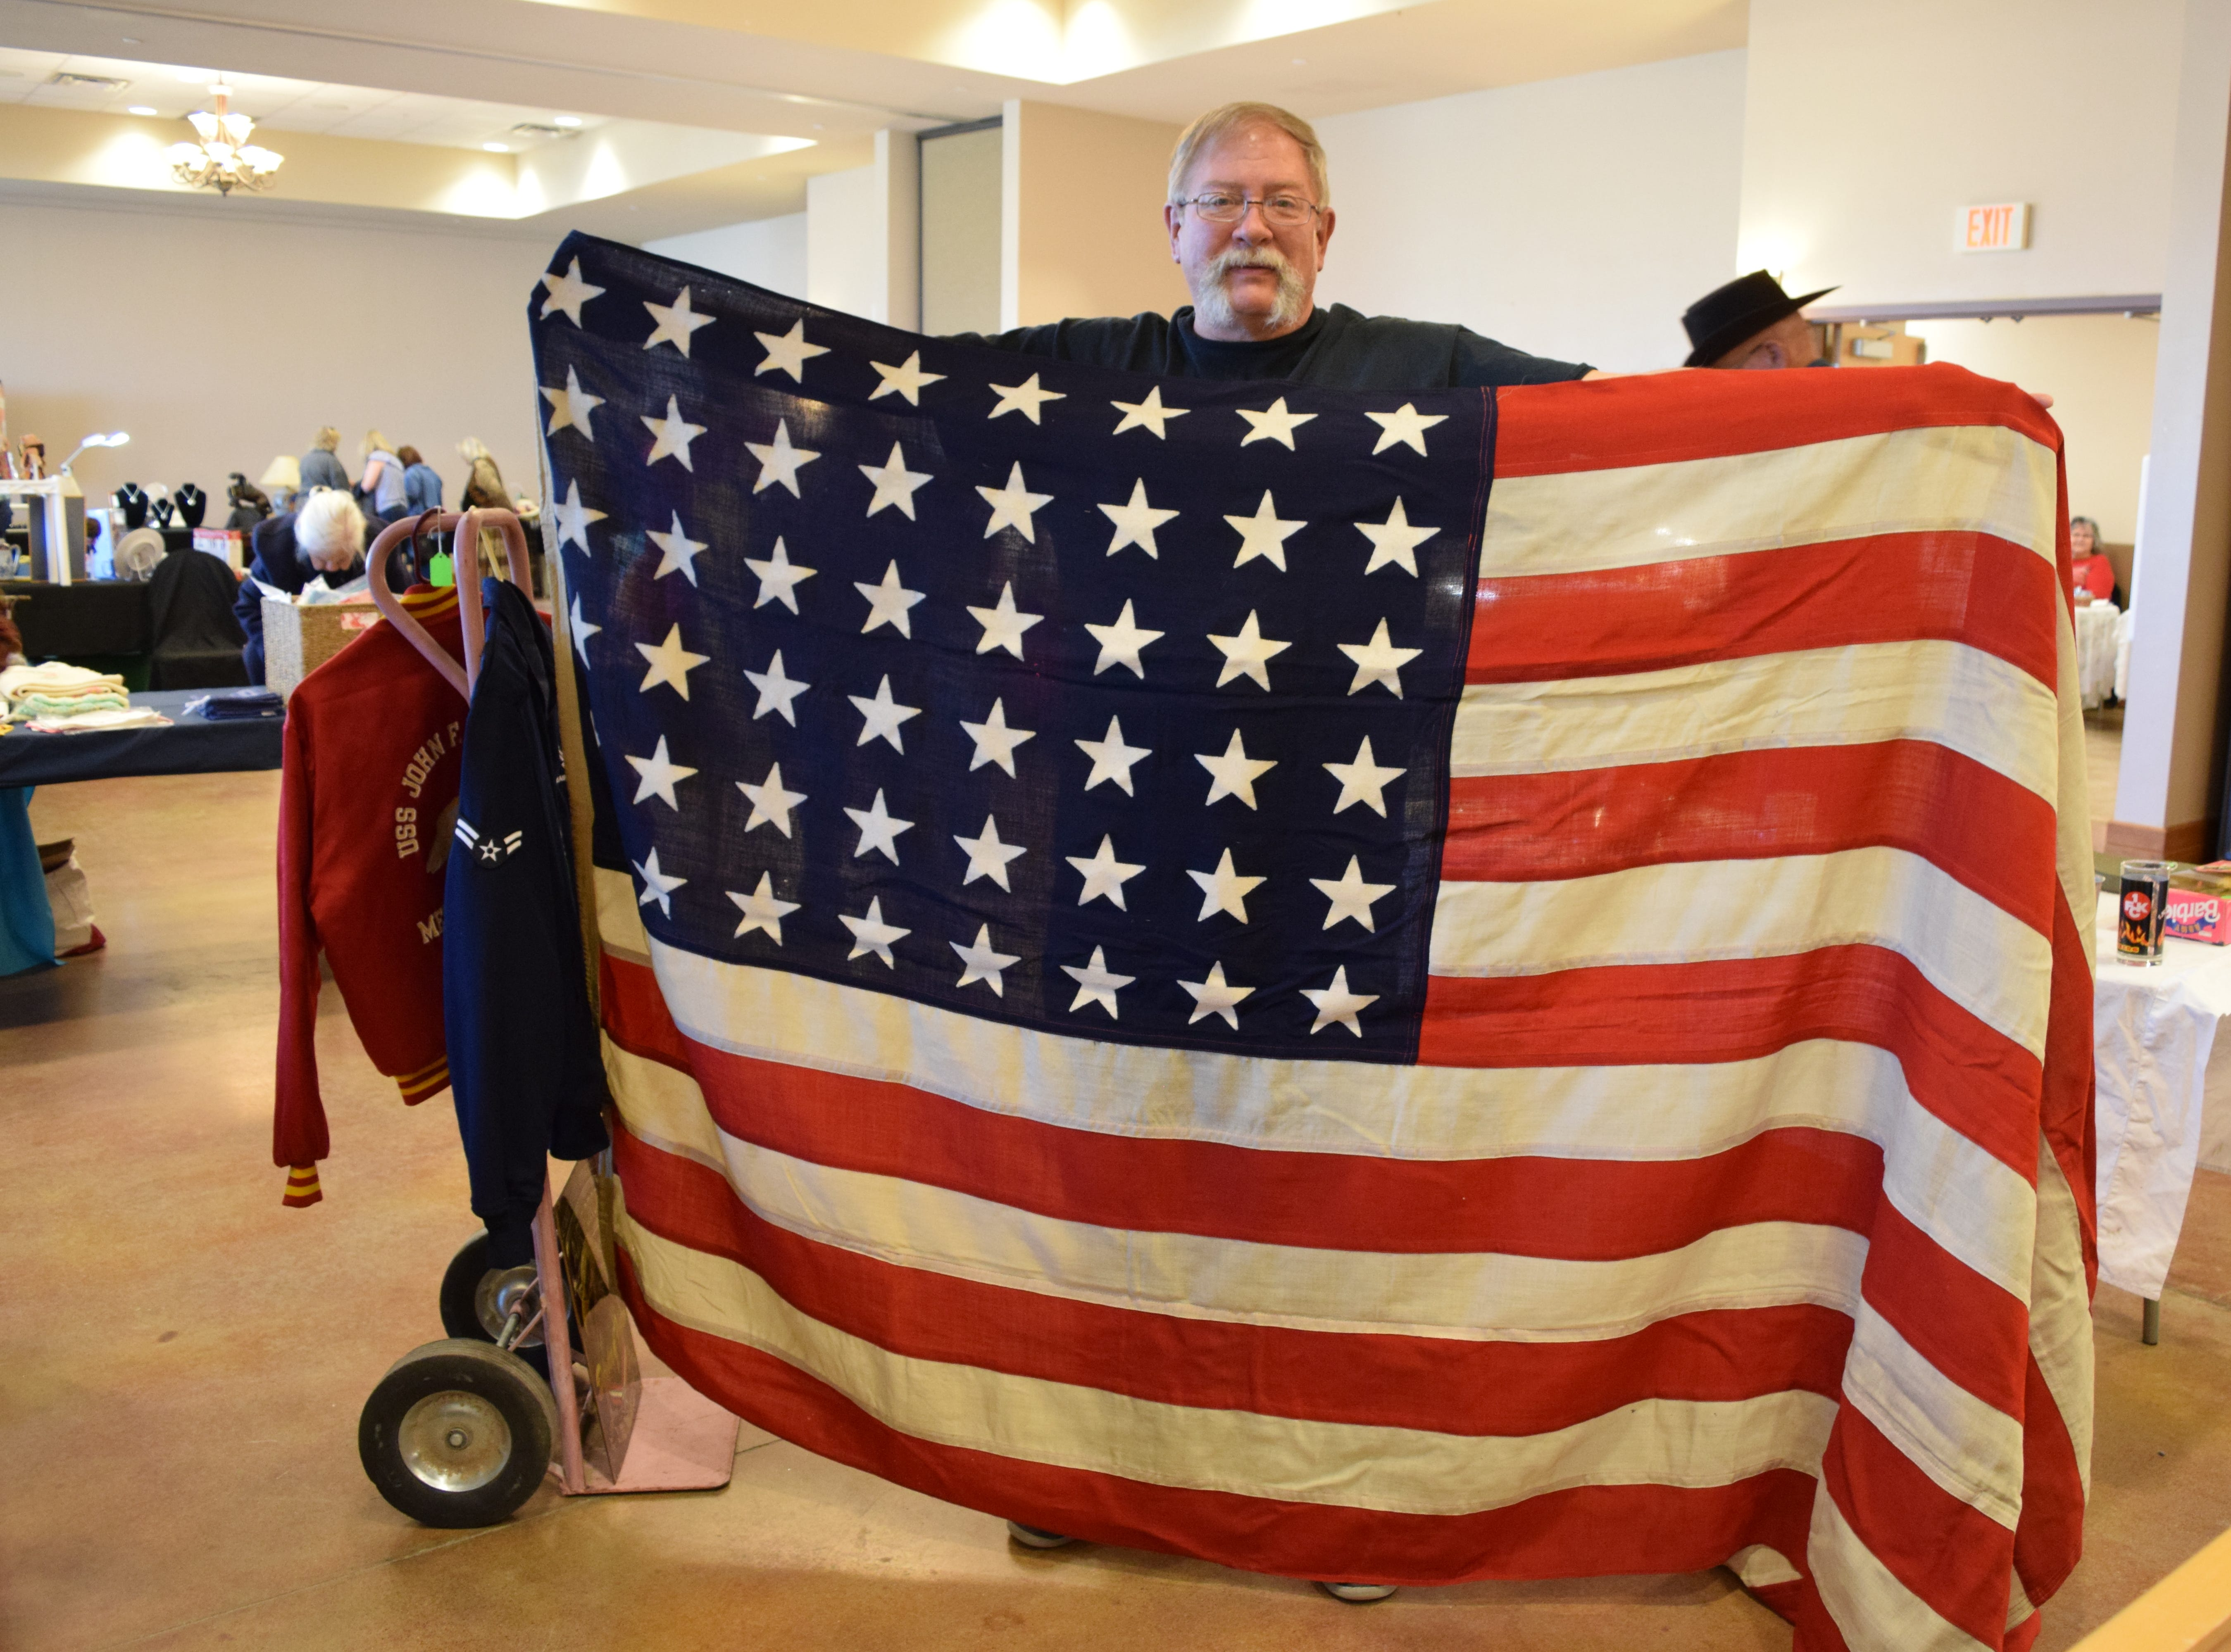 This flag, held by its current owner Kevin Dasing, flew on the USS New Orleans during the Battle of Leyte Gulf on Oct. 23-26, 1944. The Battle of Leyte Gulf (Philippines) is said by many to be the largest naval battle of World War II. During the battle, Japanese forces were crippled, allowing the U.S. invasion of the Philippines and reinforcing the Allies' control of the Pacific. — Antiques Treasures Show at the Farm and Ranch Heritage Museum, Jan. 26, 2019.